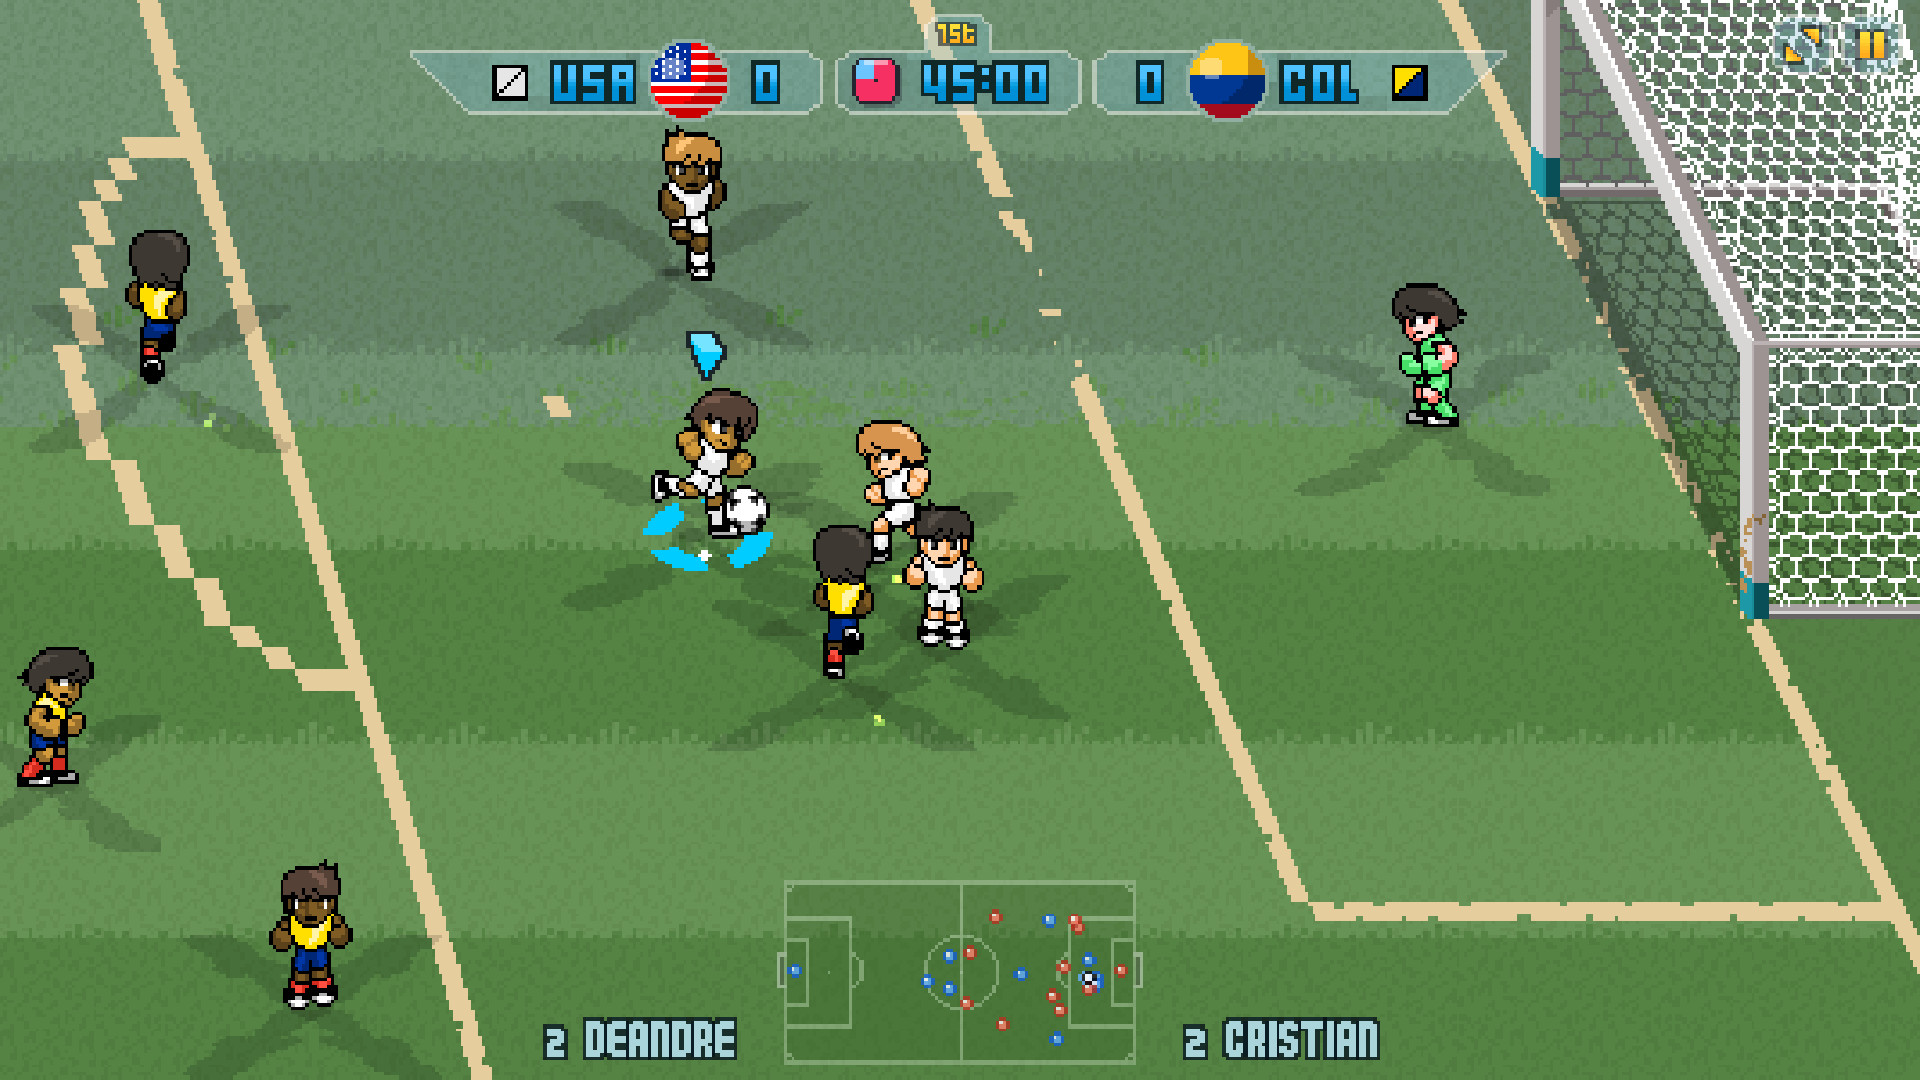 preview pixel cup soccer pc games n news you can also play friendly matches do some challenges penalty kicks or just practice and train your skills